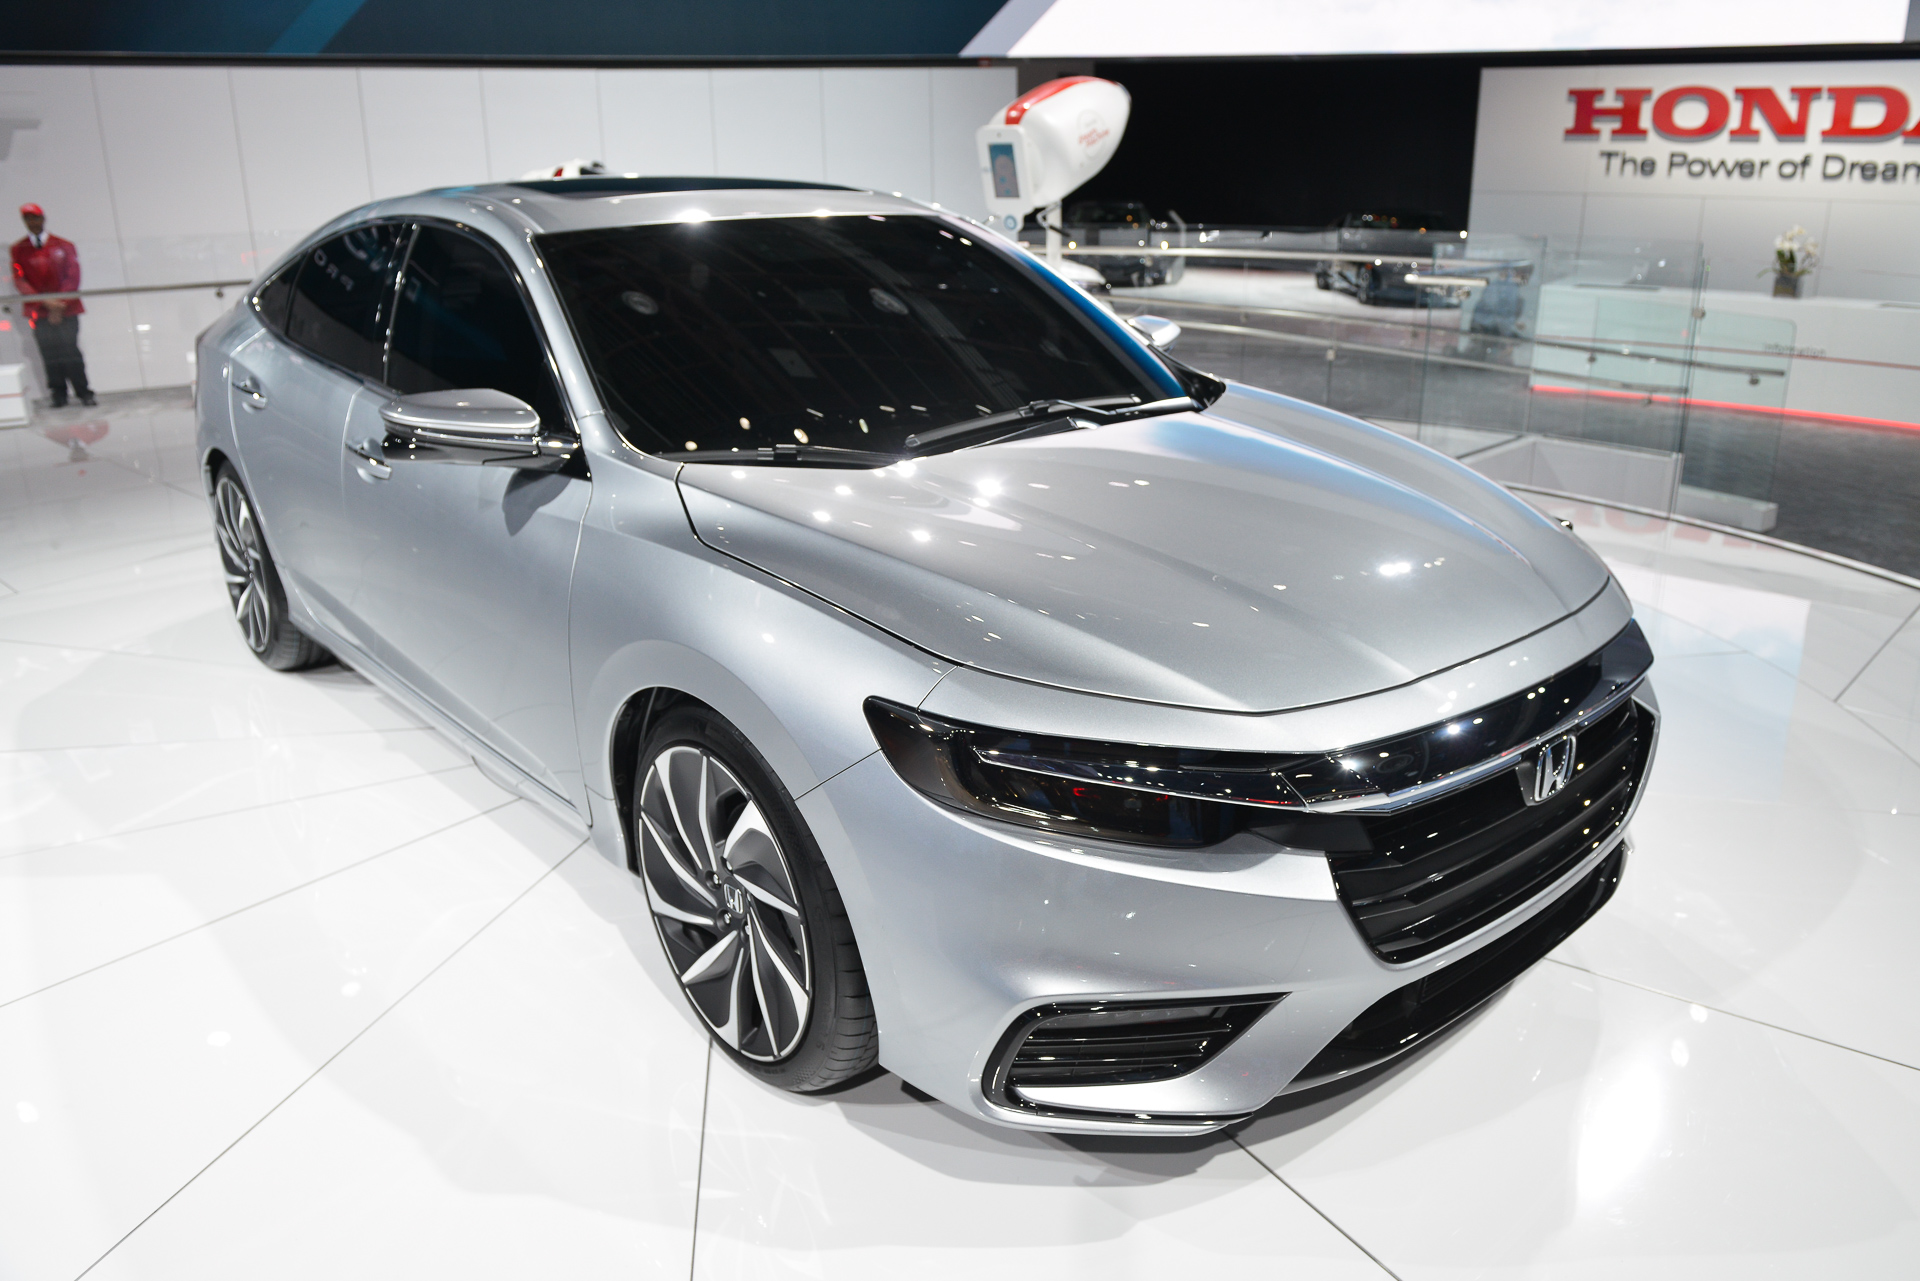 2019 Honda Insight Prototype Debuts In Detroit 50 Mpg Or Better Projected